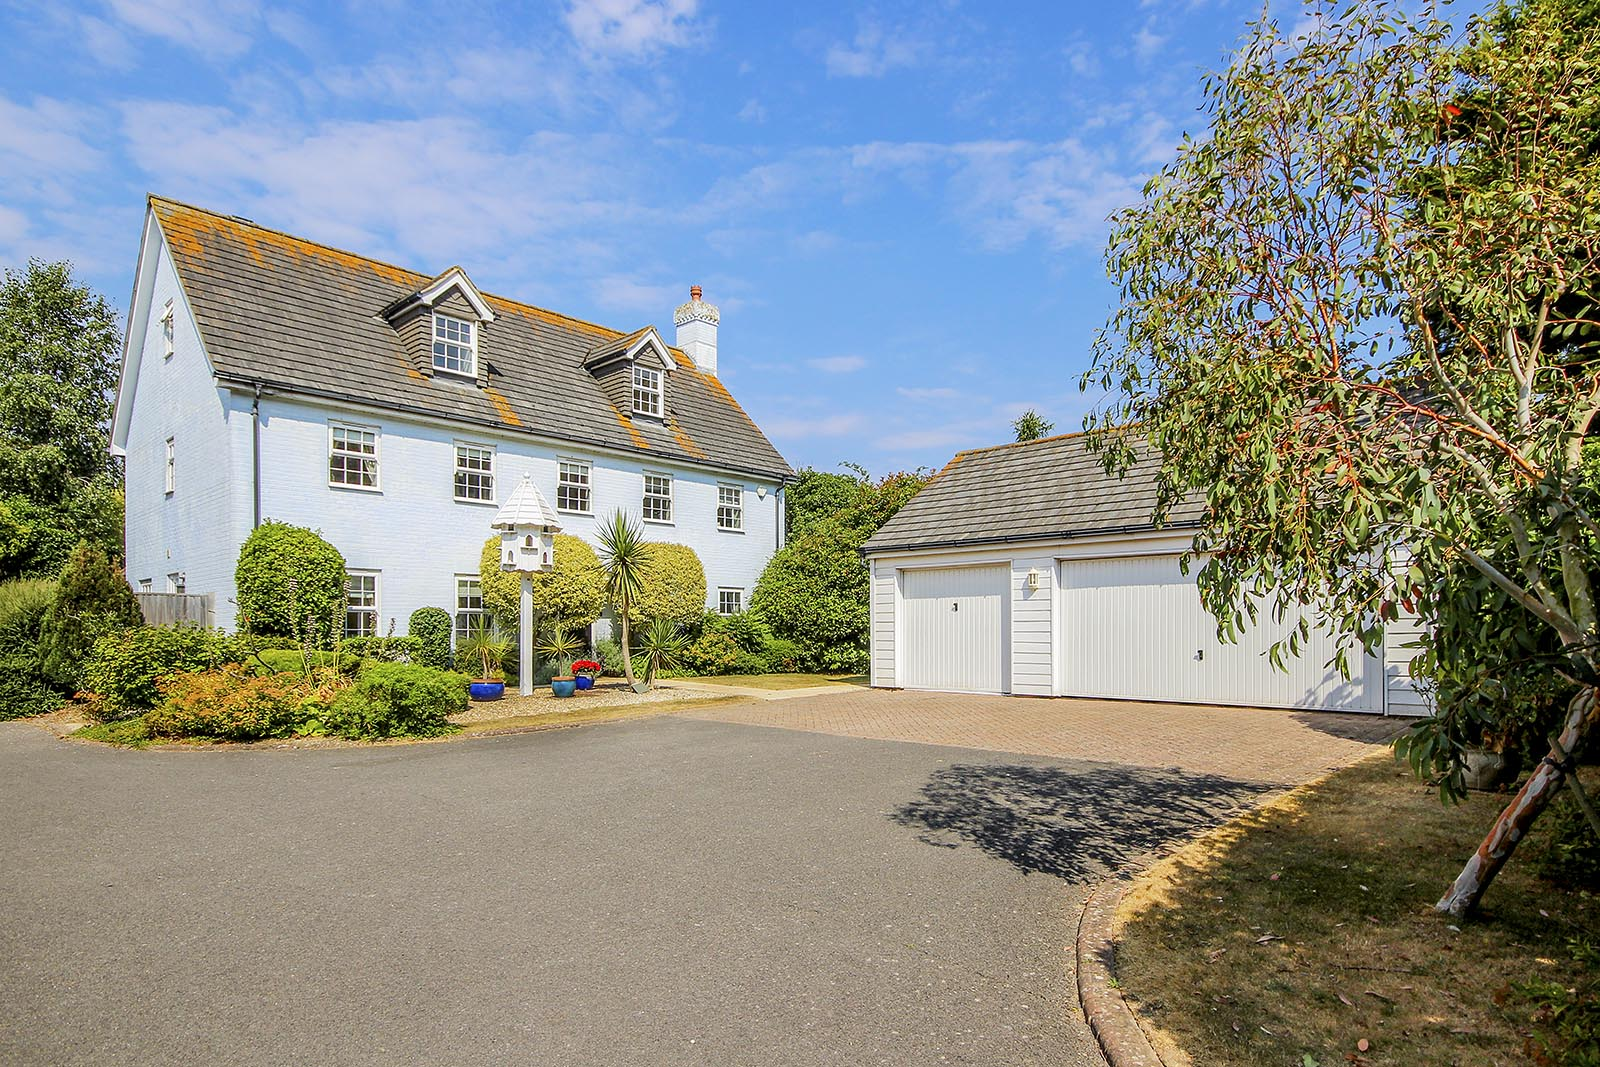 6 bed house for sale in Hammond Close, Angmering  - Property Image 9